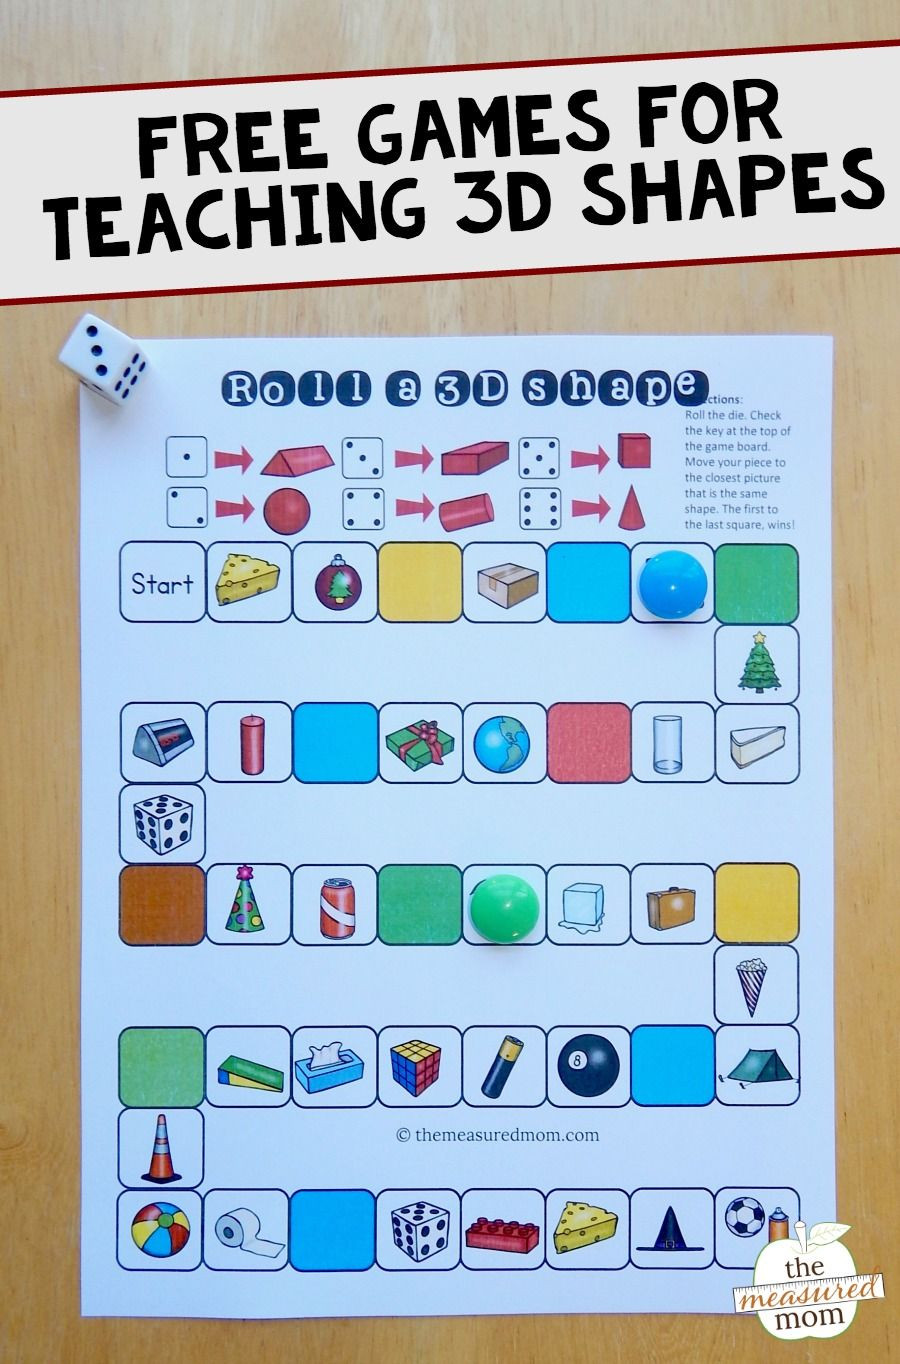 Free Printable 3d Shapes Worksheets Free Games for Teaching About 3d Shapes